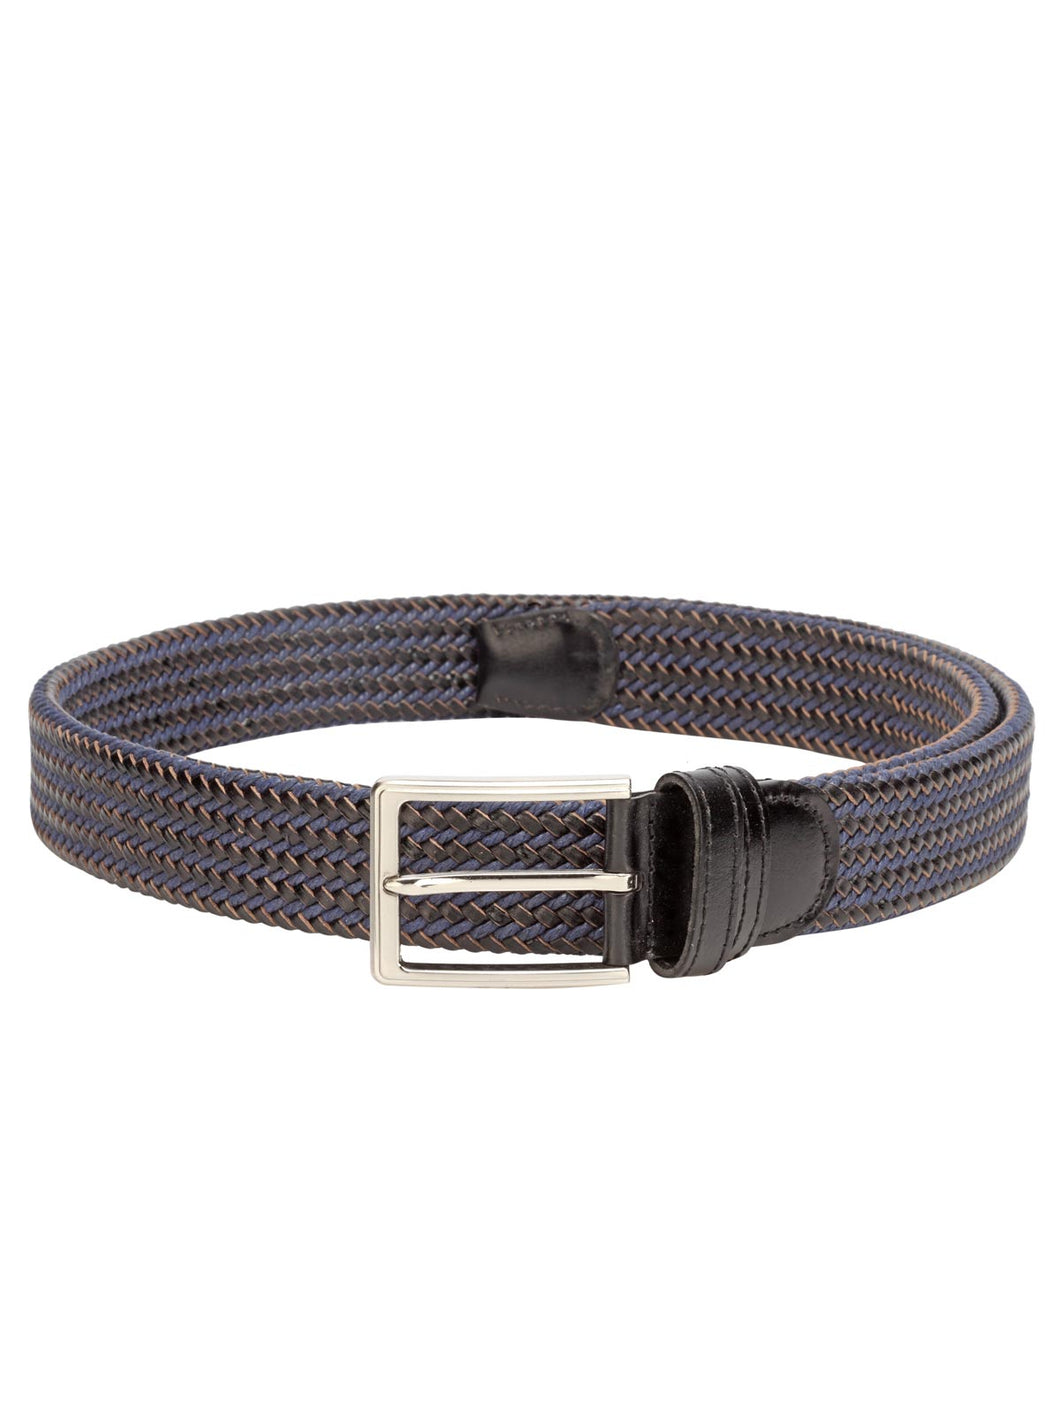 Teakwood Men Black Leather Reversible Belt